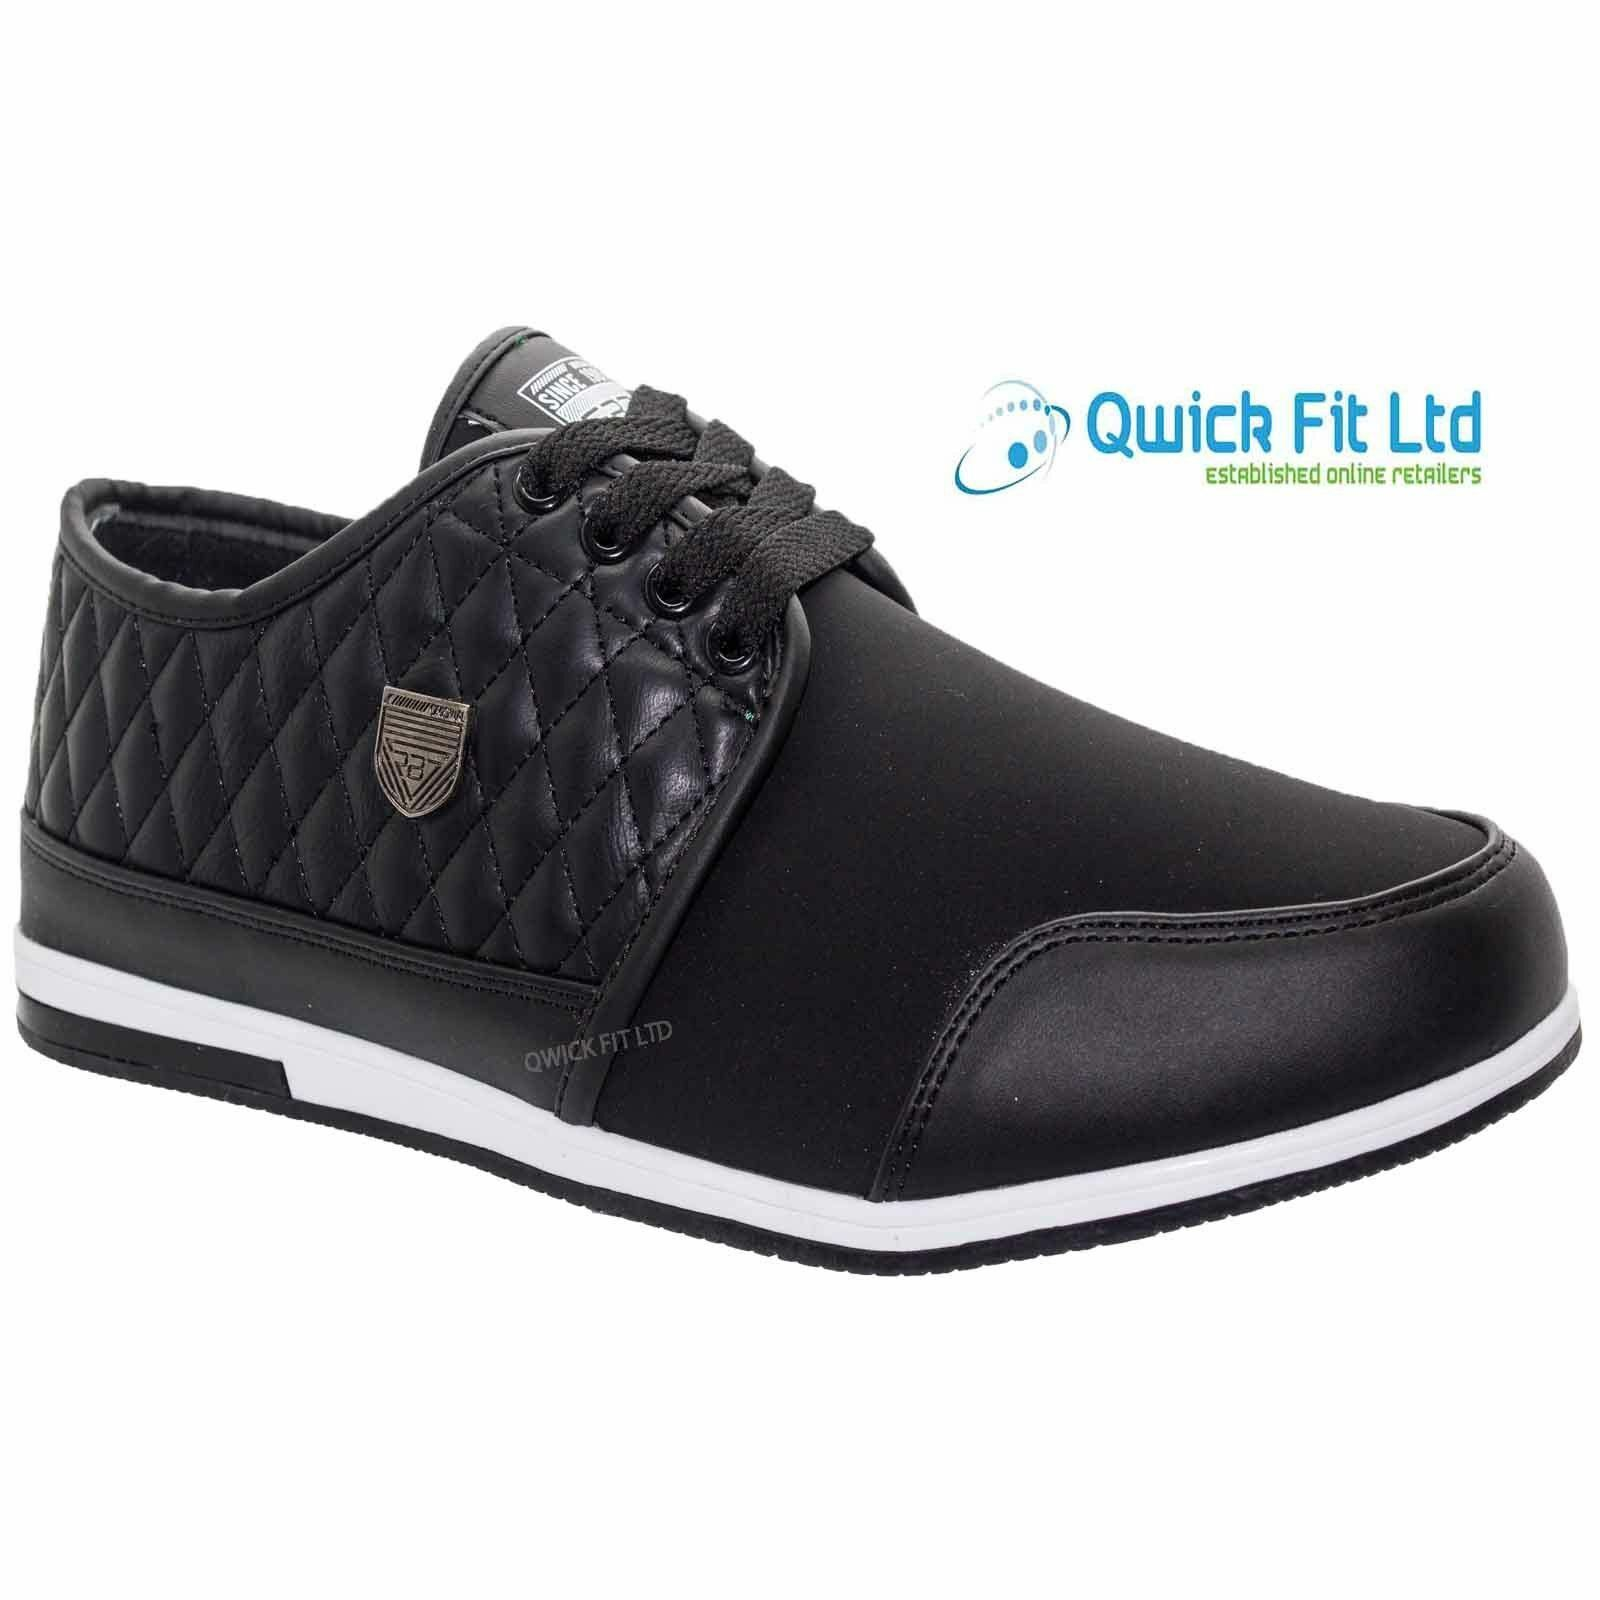 New Mens Lace Up Flat Light Quilted Casual Smart Low Ankle shoesTrainers Uk Size